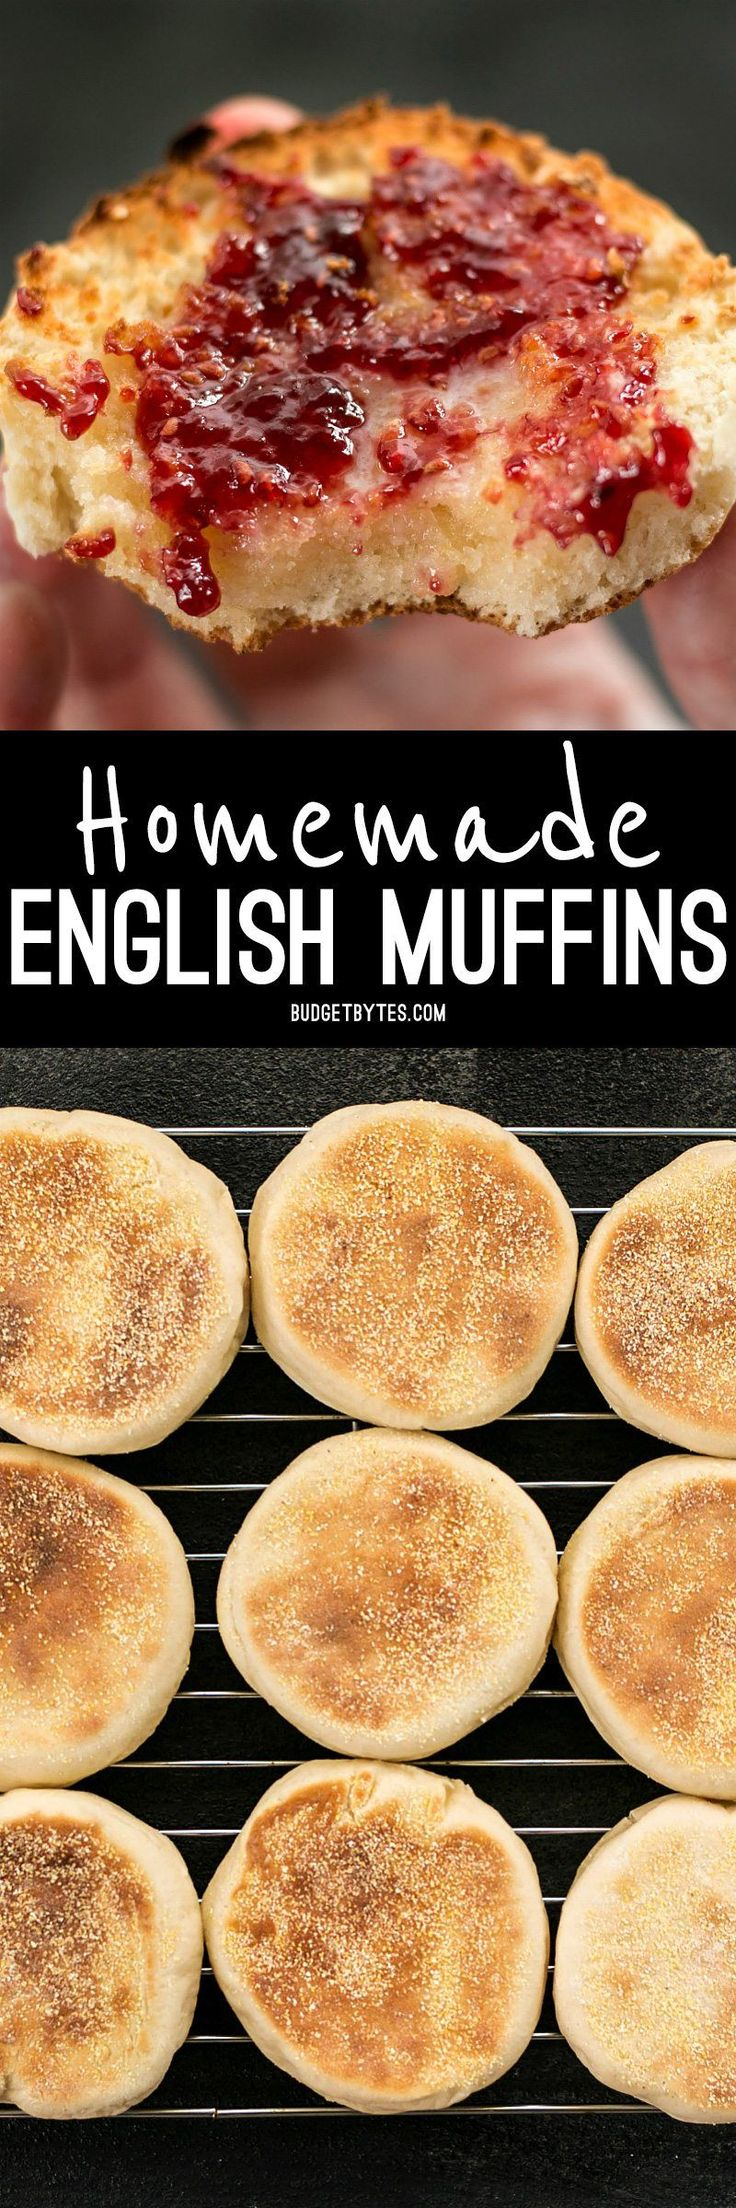 Homemade English muffins are fun to make, delicious, and cost just pennies each. Make this your next weekend project! BudgetBytes.com